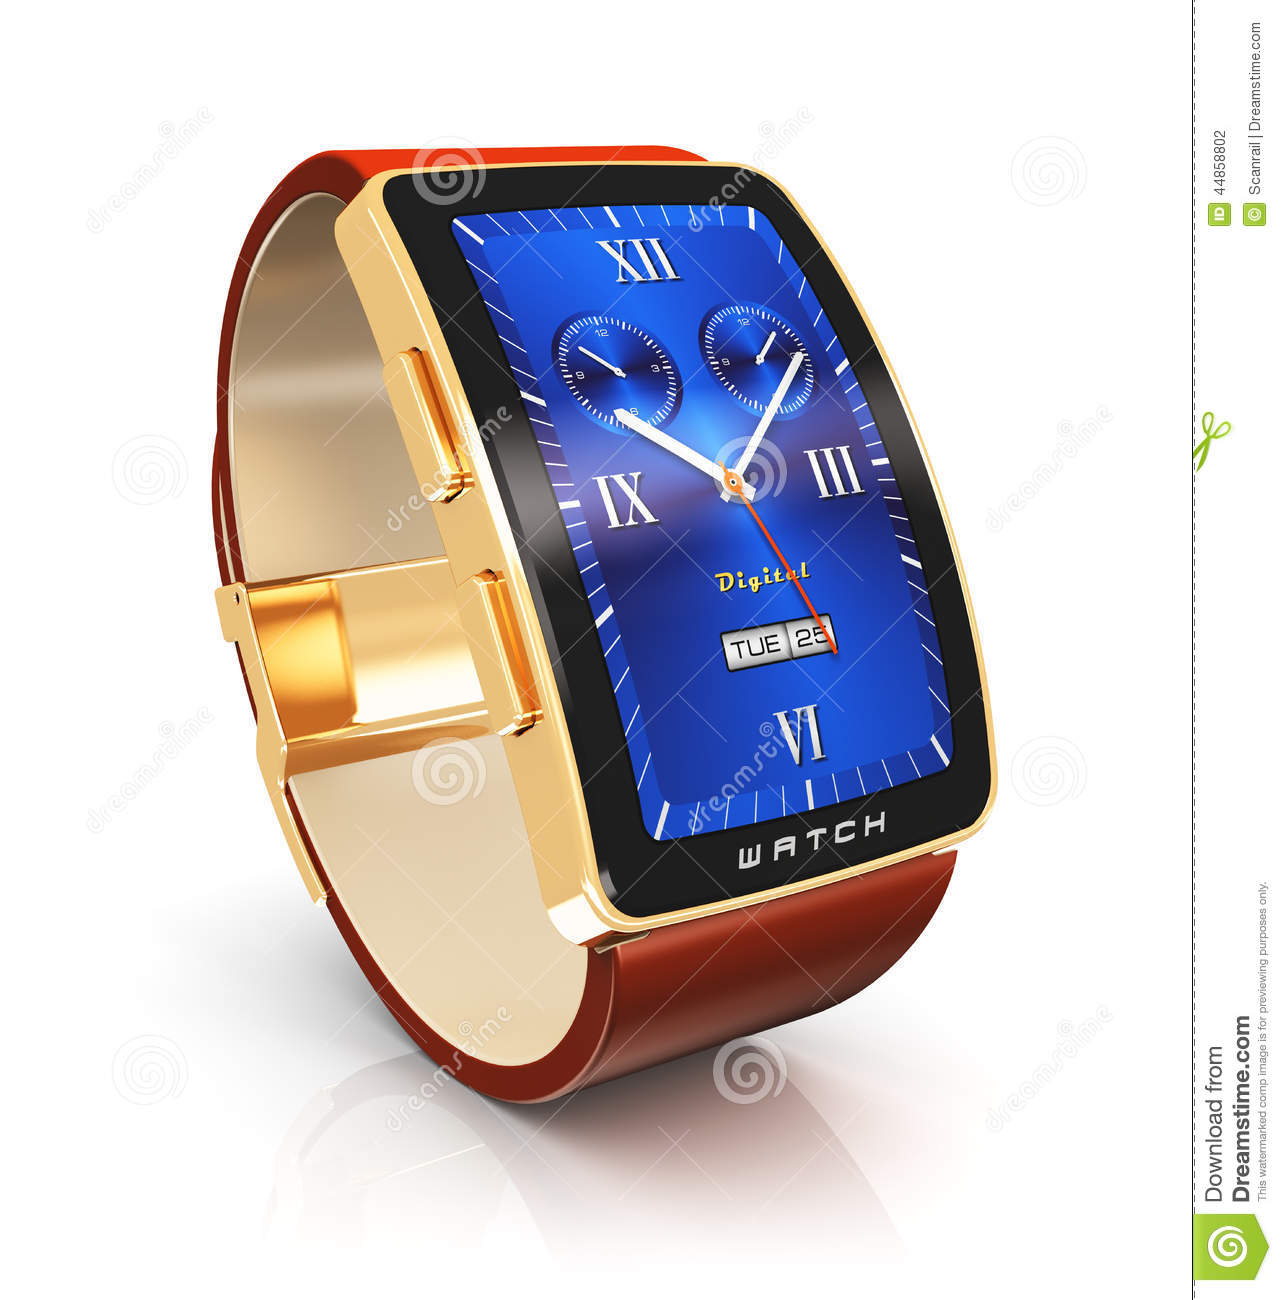 brown rjd watch black product gold smart smartwatches bluetooth watches wearable